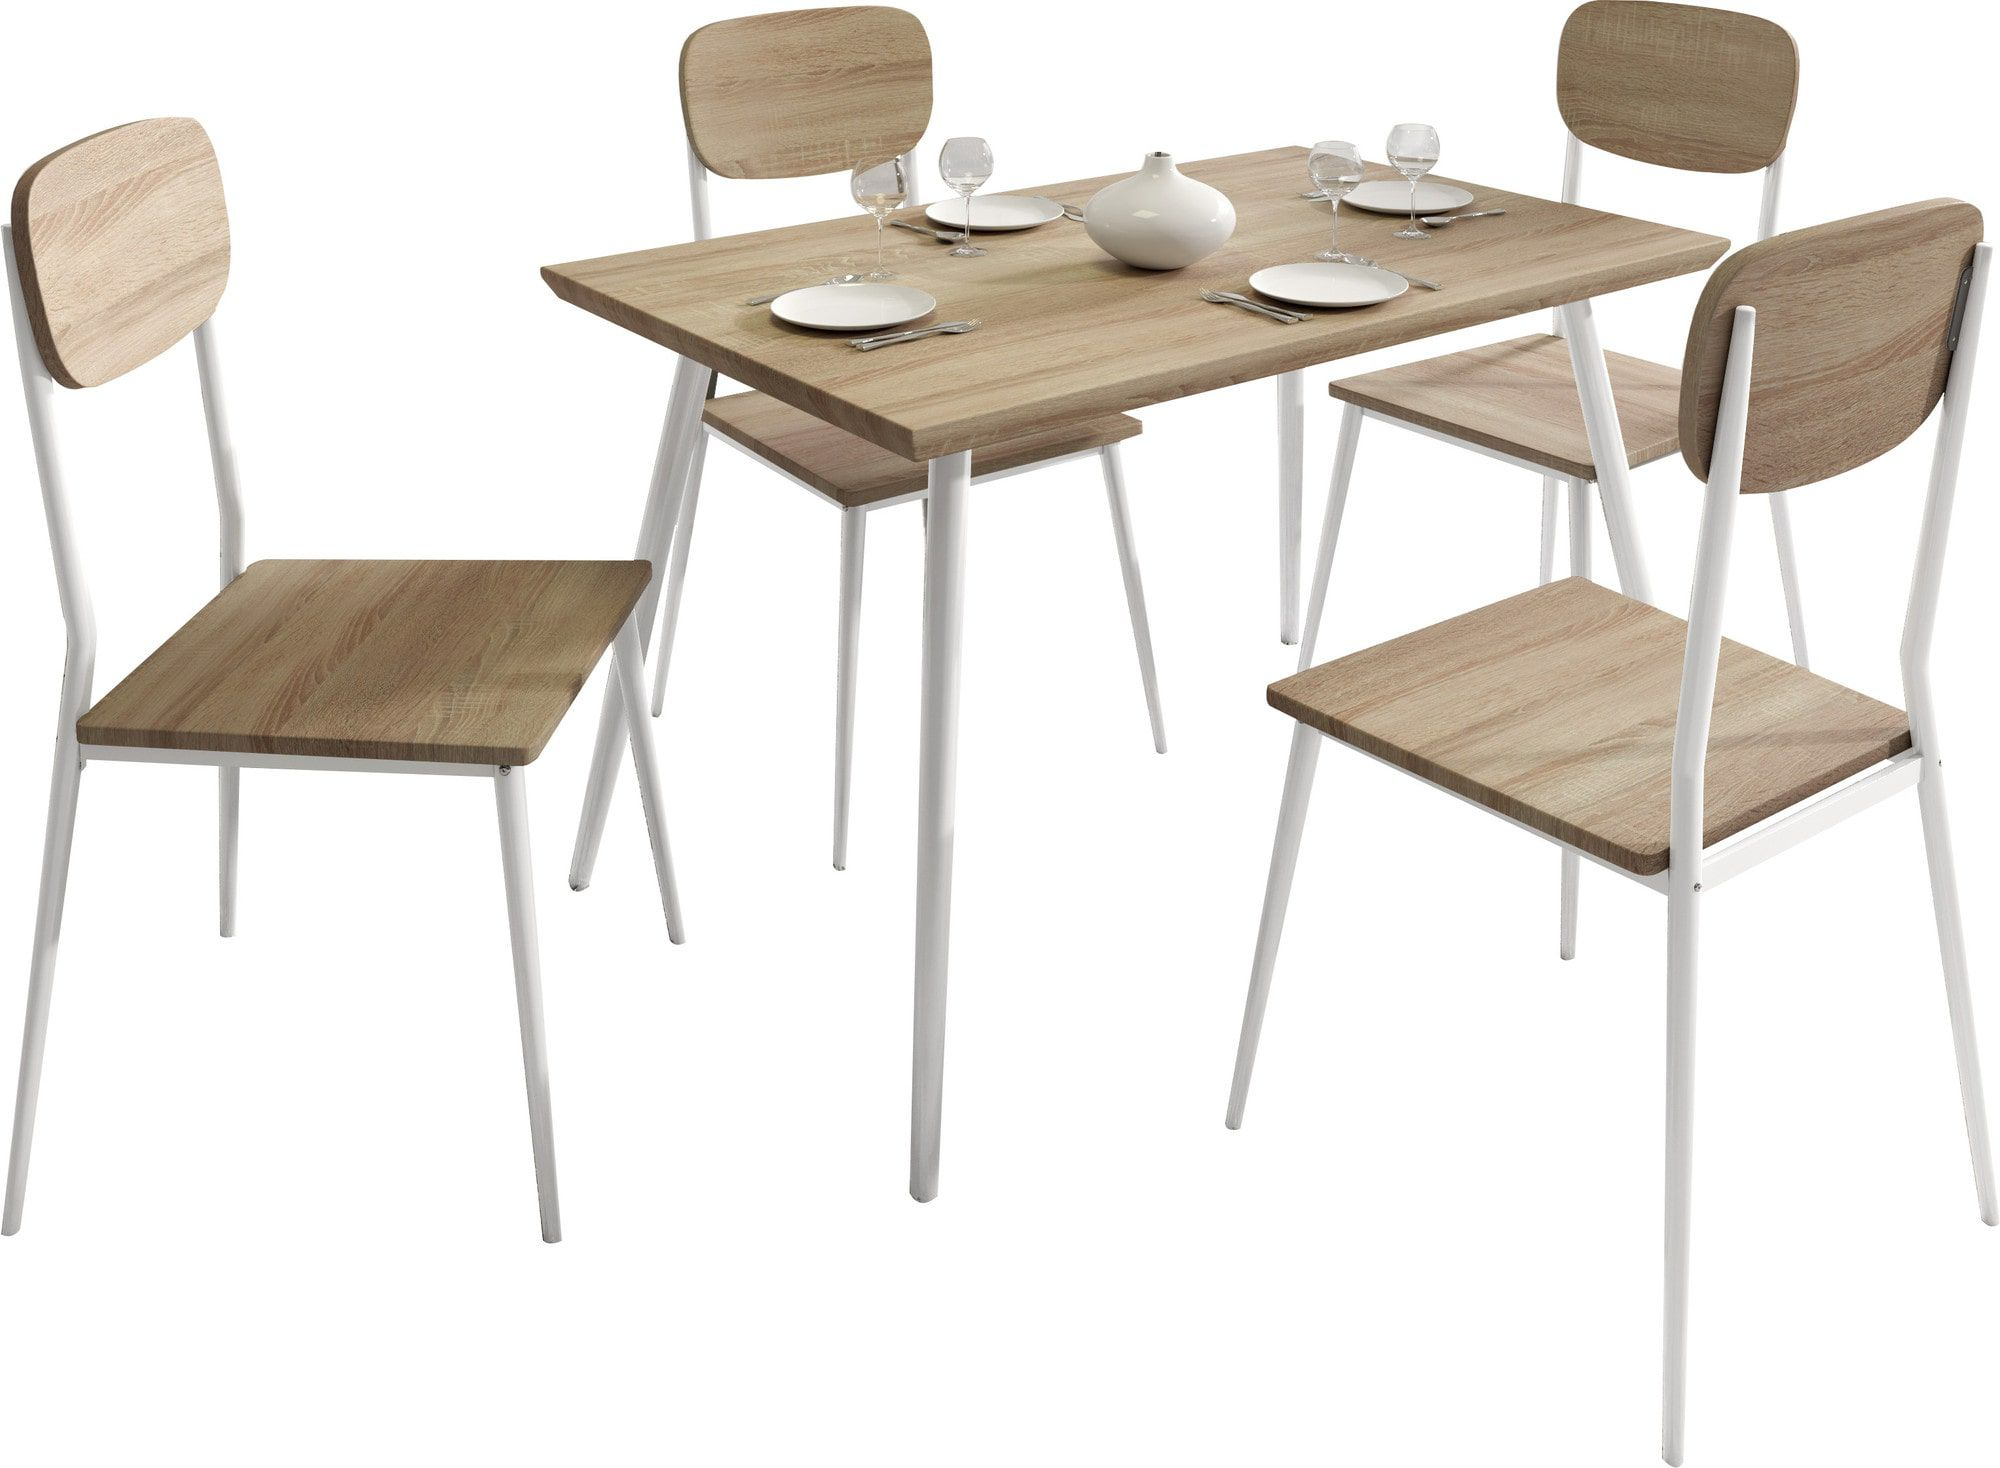 Comment assortir l ensemble table et chaise de sa salle for Ensemble chaise et table salle a manger